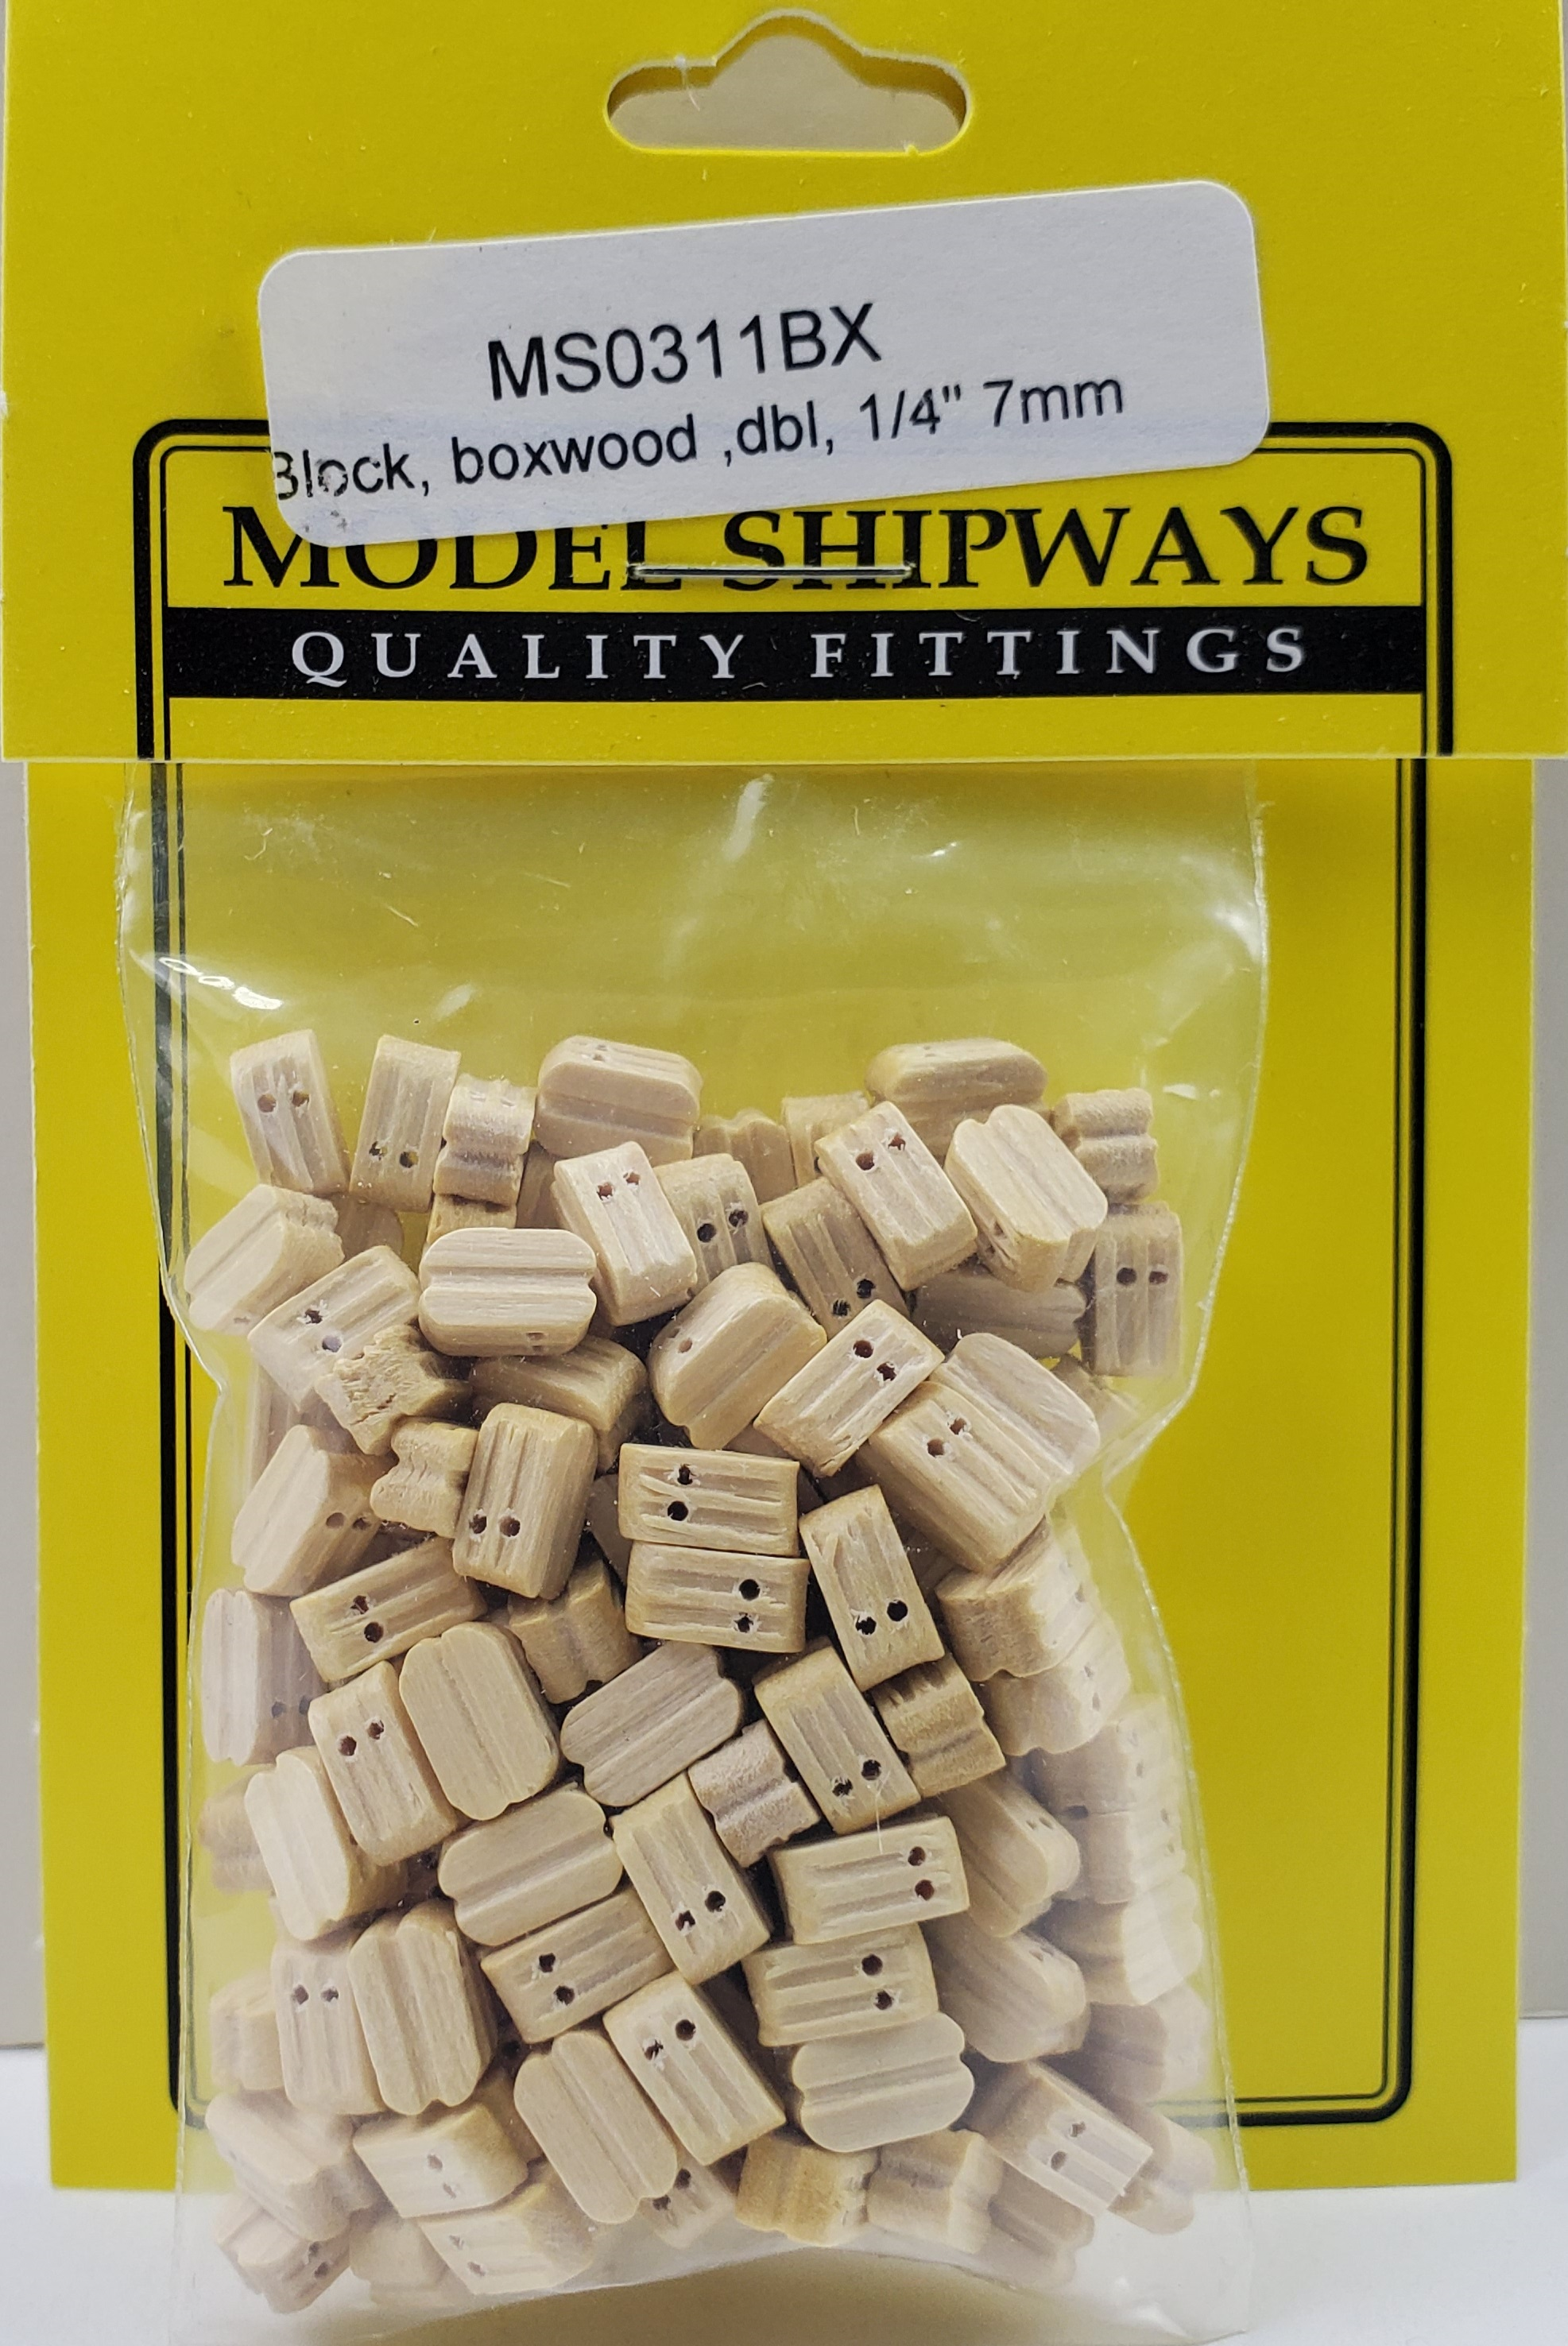 Model Shipways Double Sheave Block, Boxwood 1/4